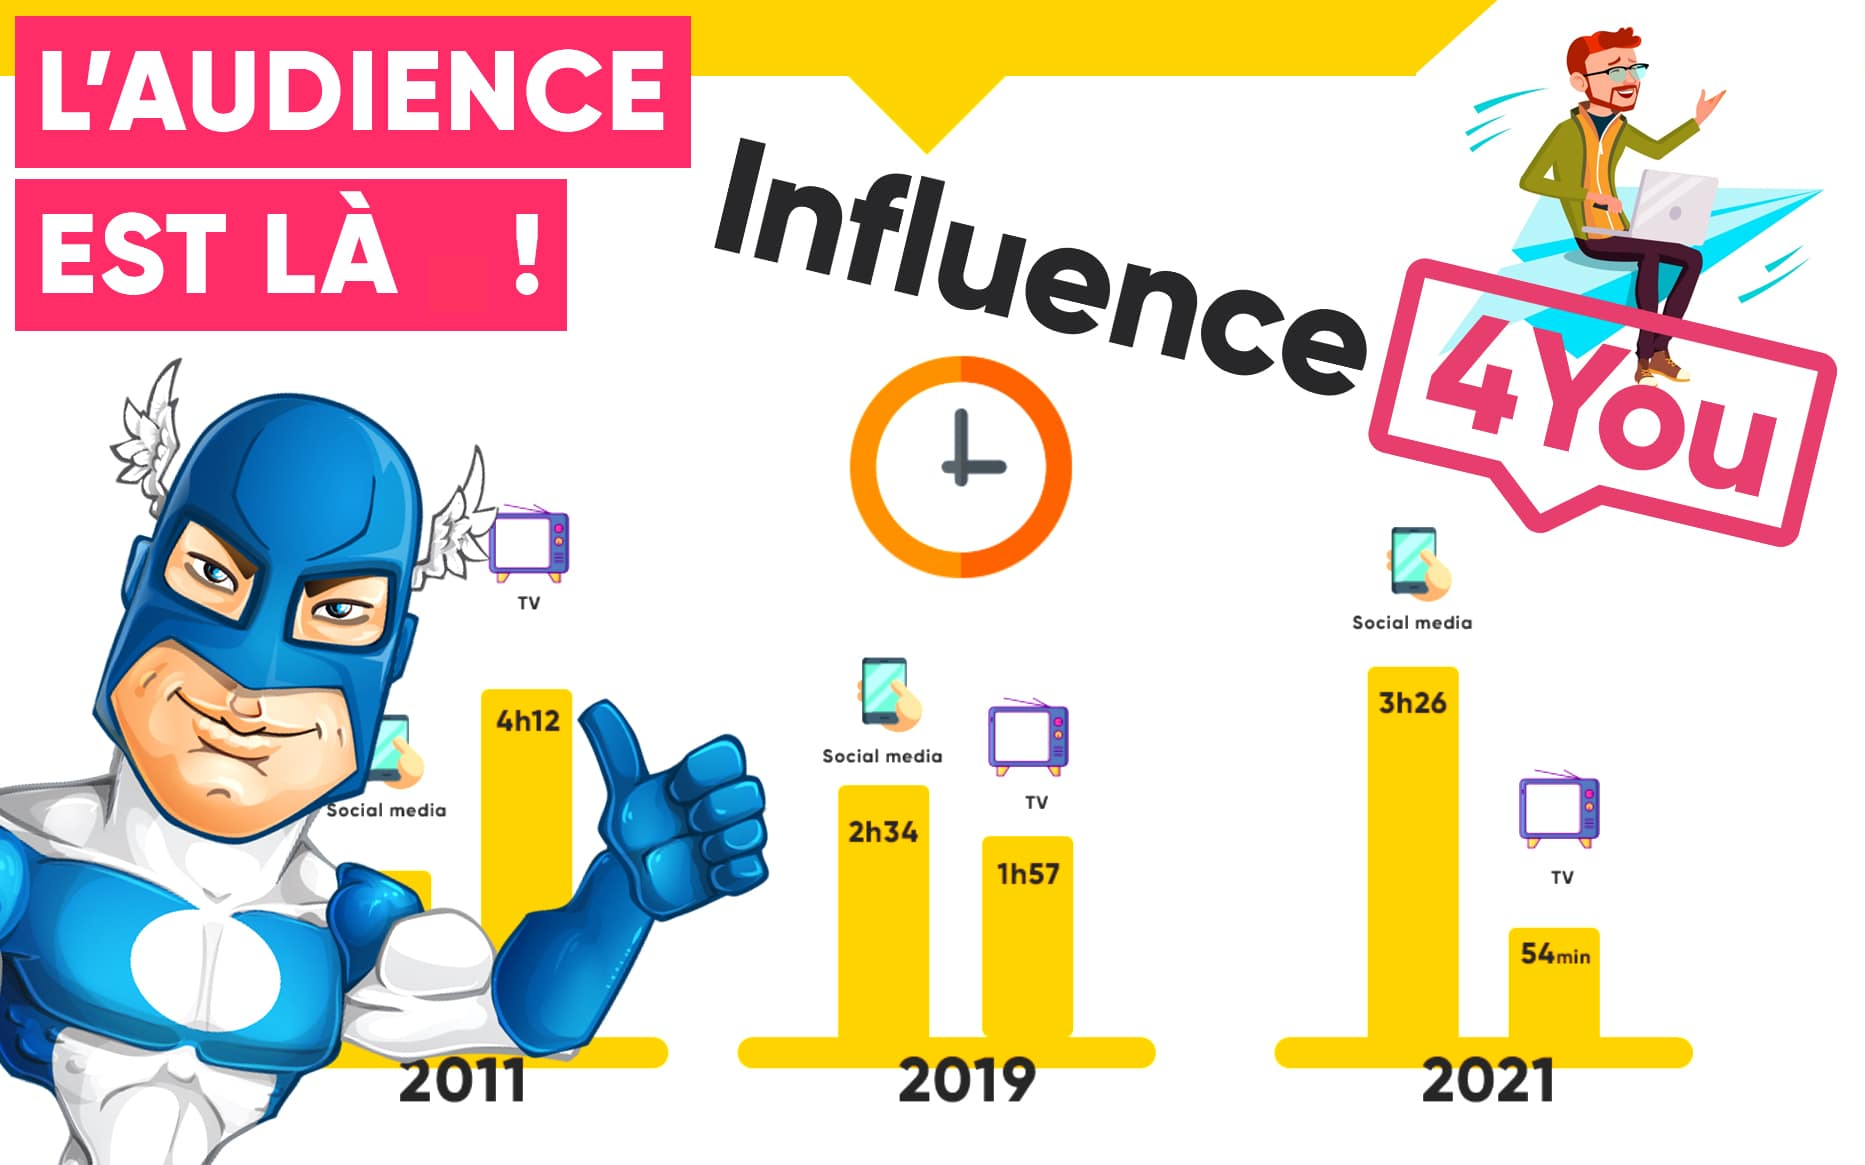 influence4you 69